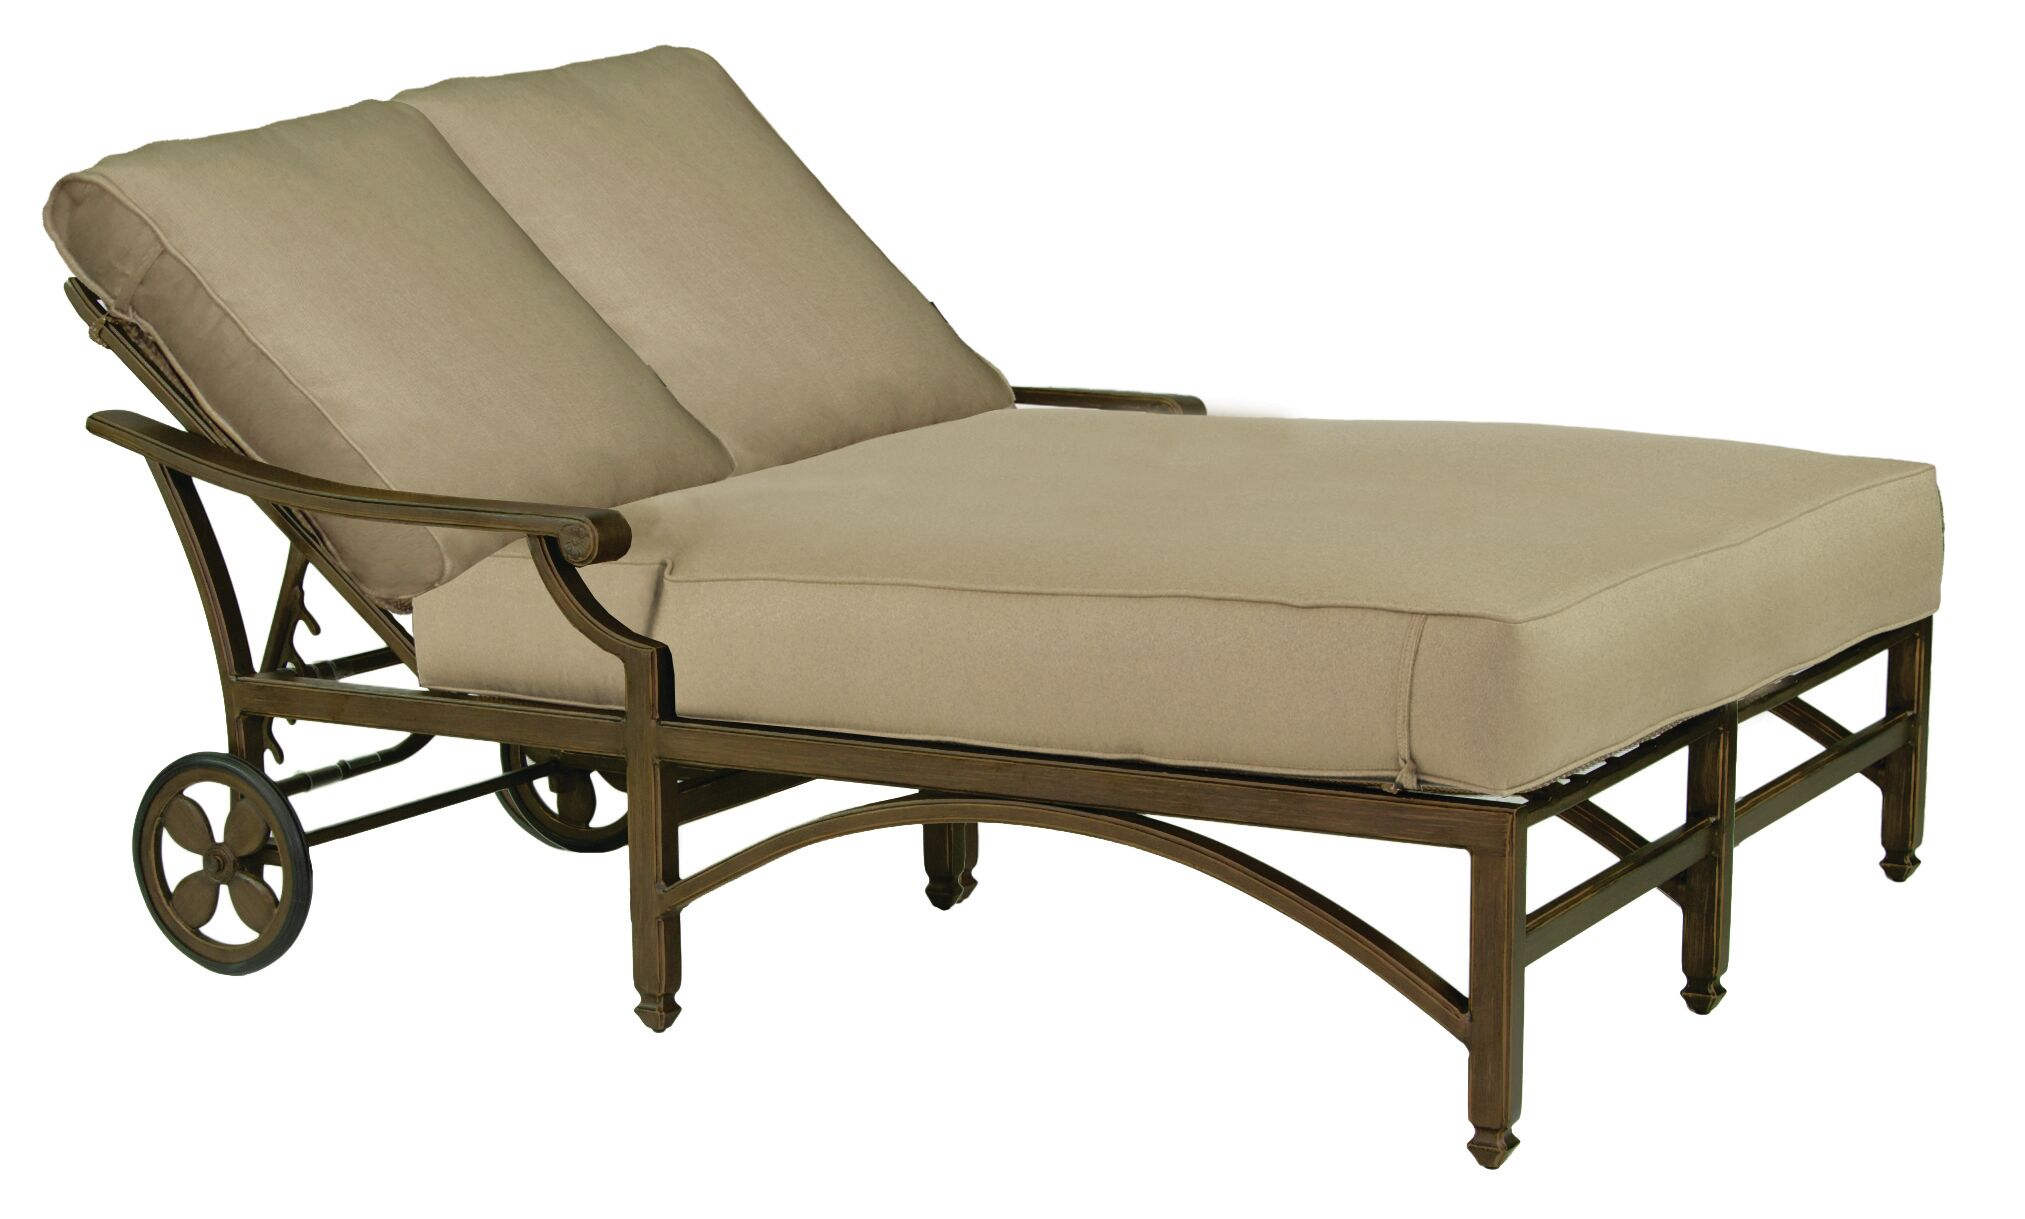 Grand Regent Double Chaise Lounge with Cushion